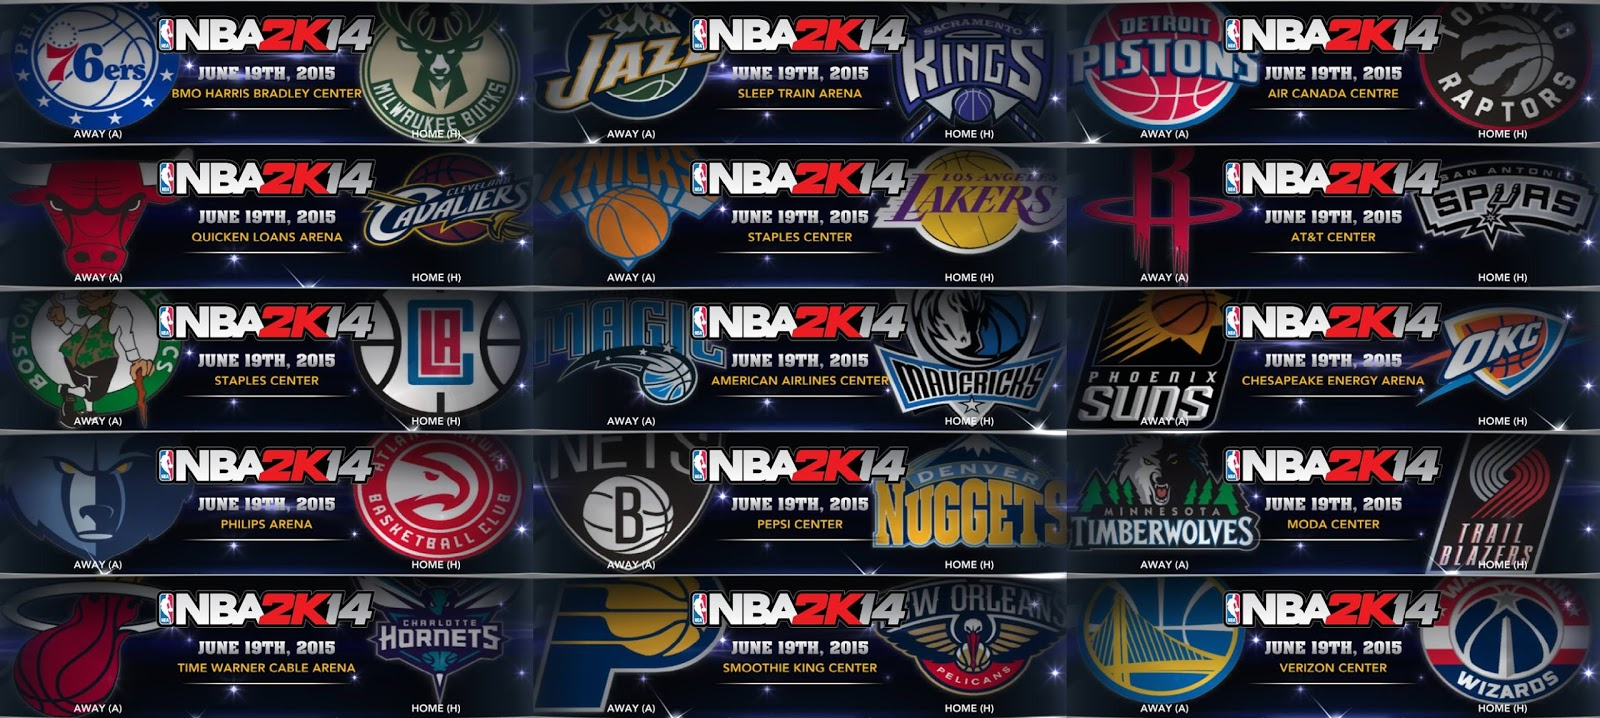 NBA 2K14 2015-16 NBA Logos Patch - Primary Logos